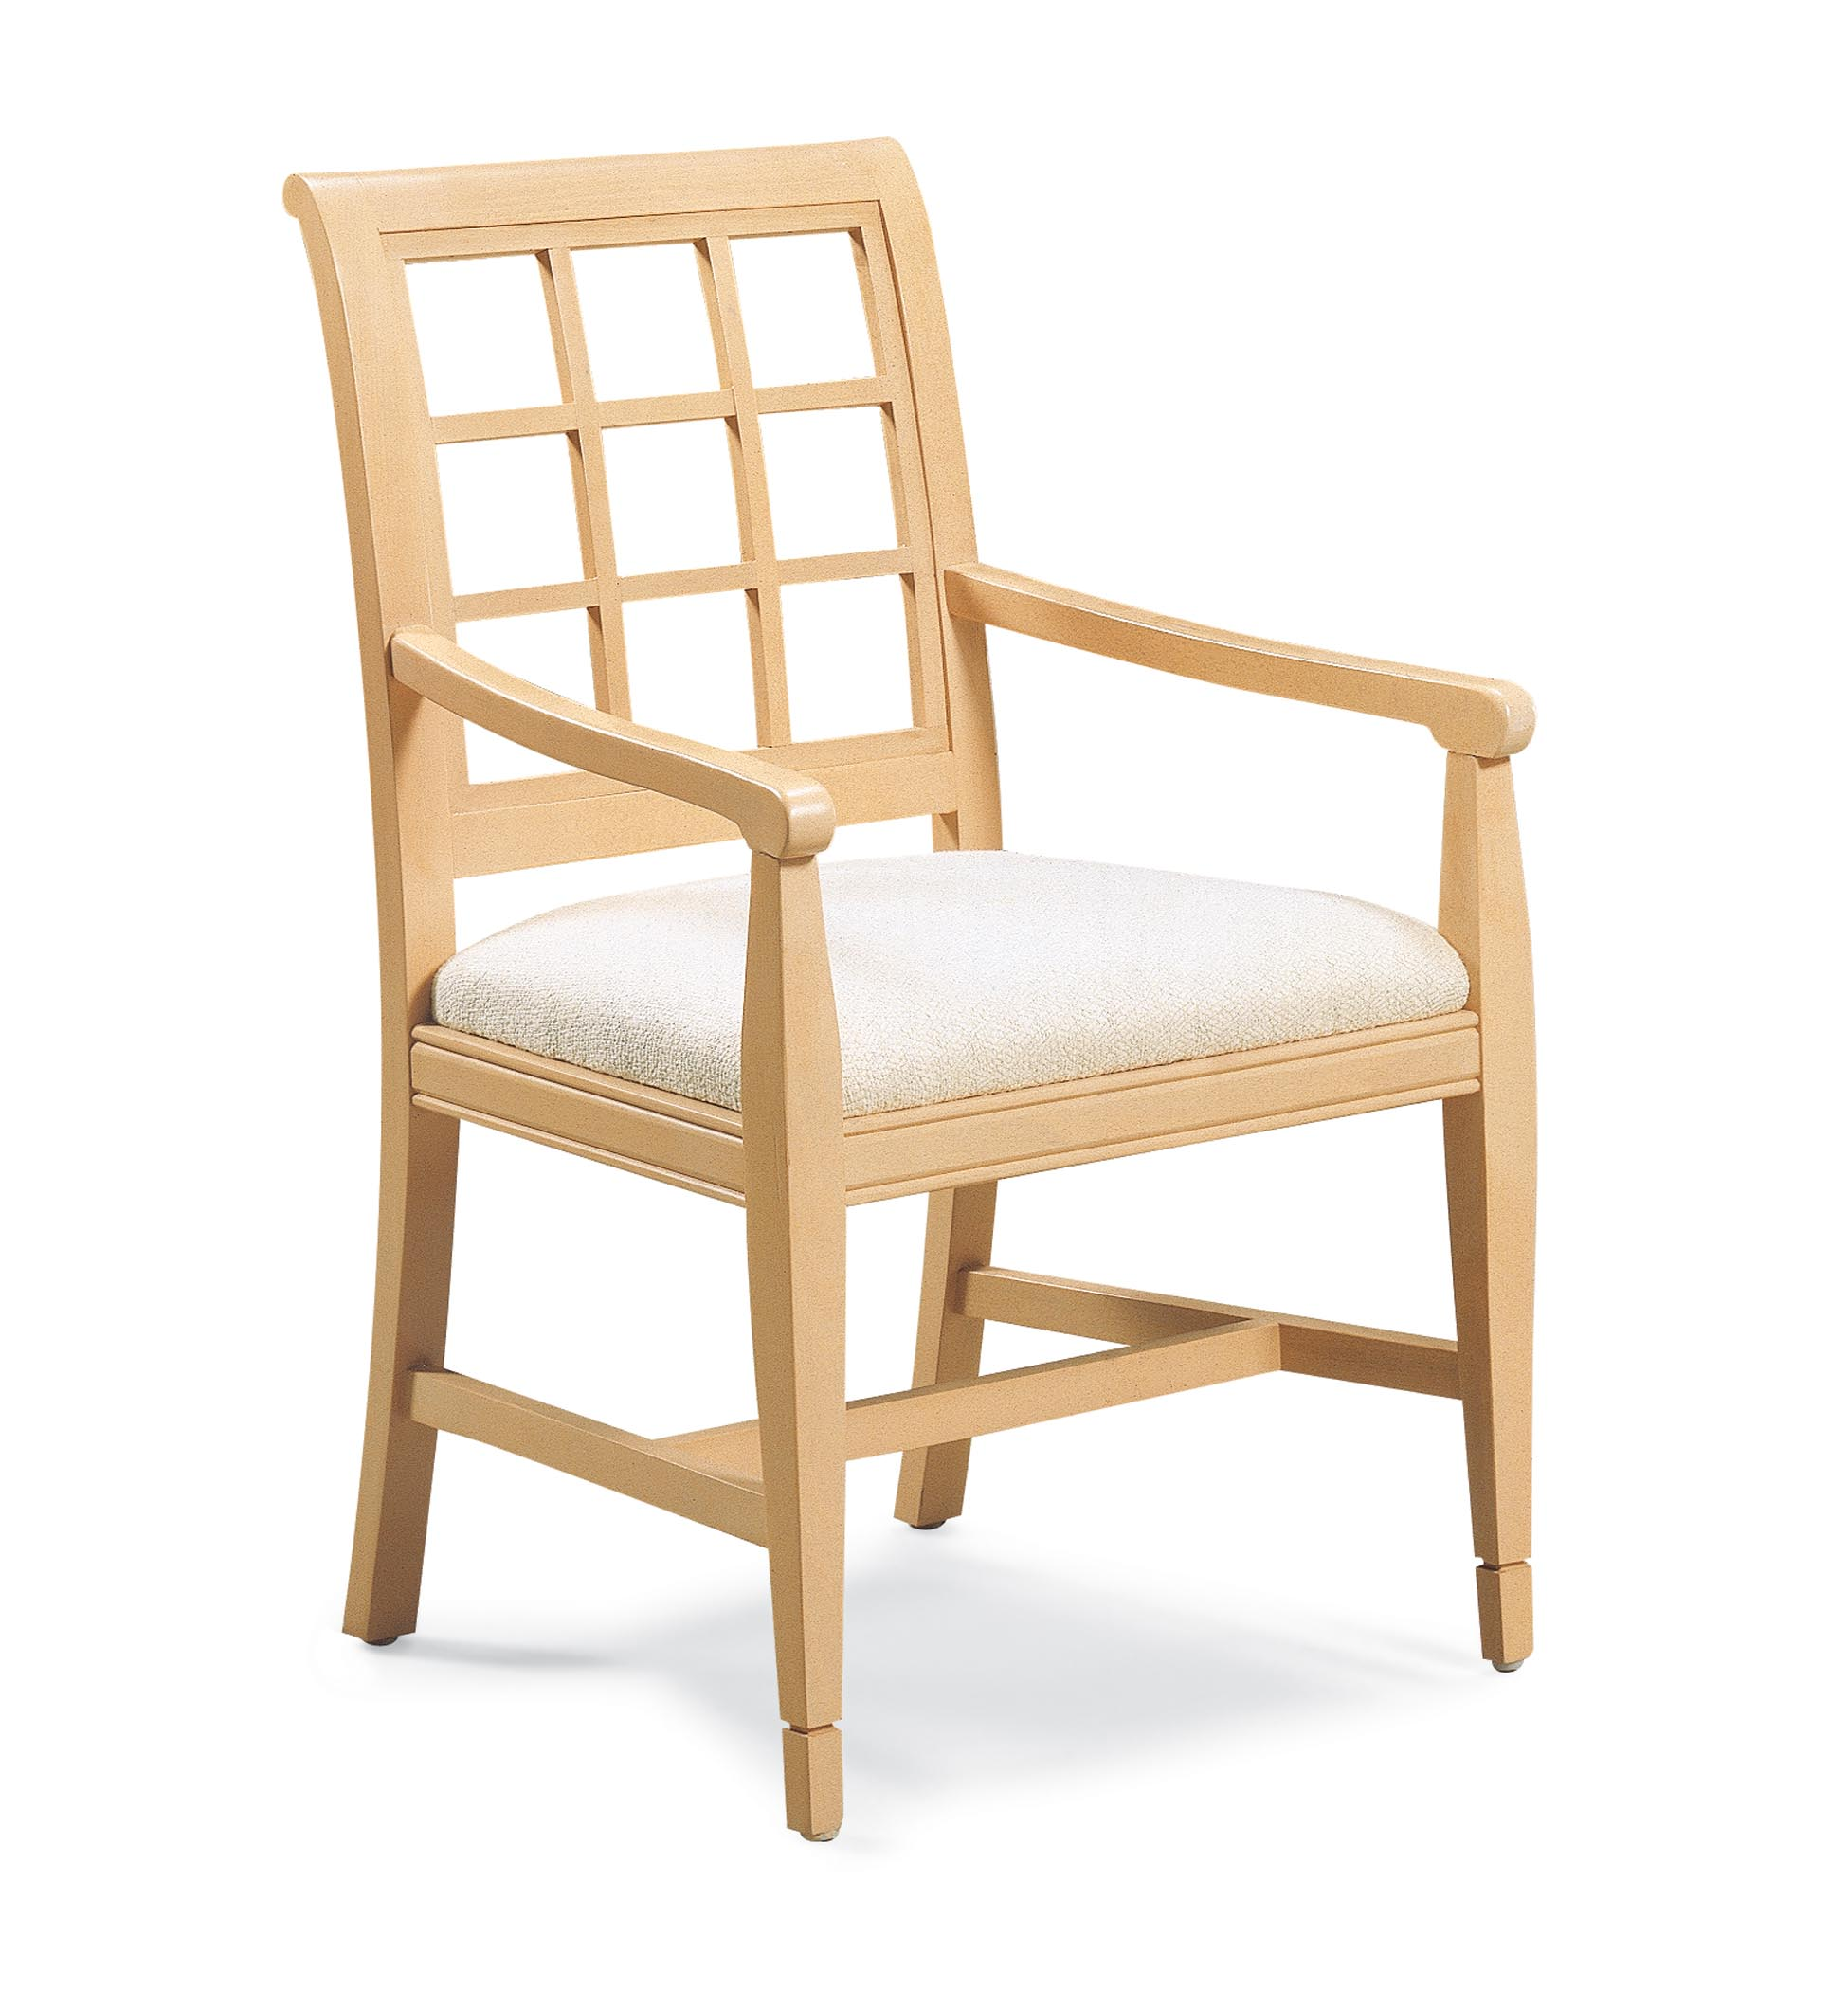 Wooden Chairs With Arms ~ Wood arm chair